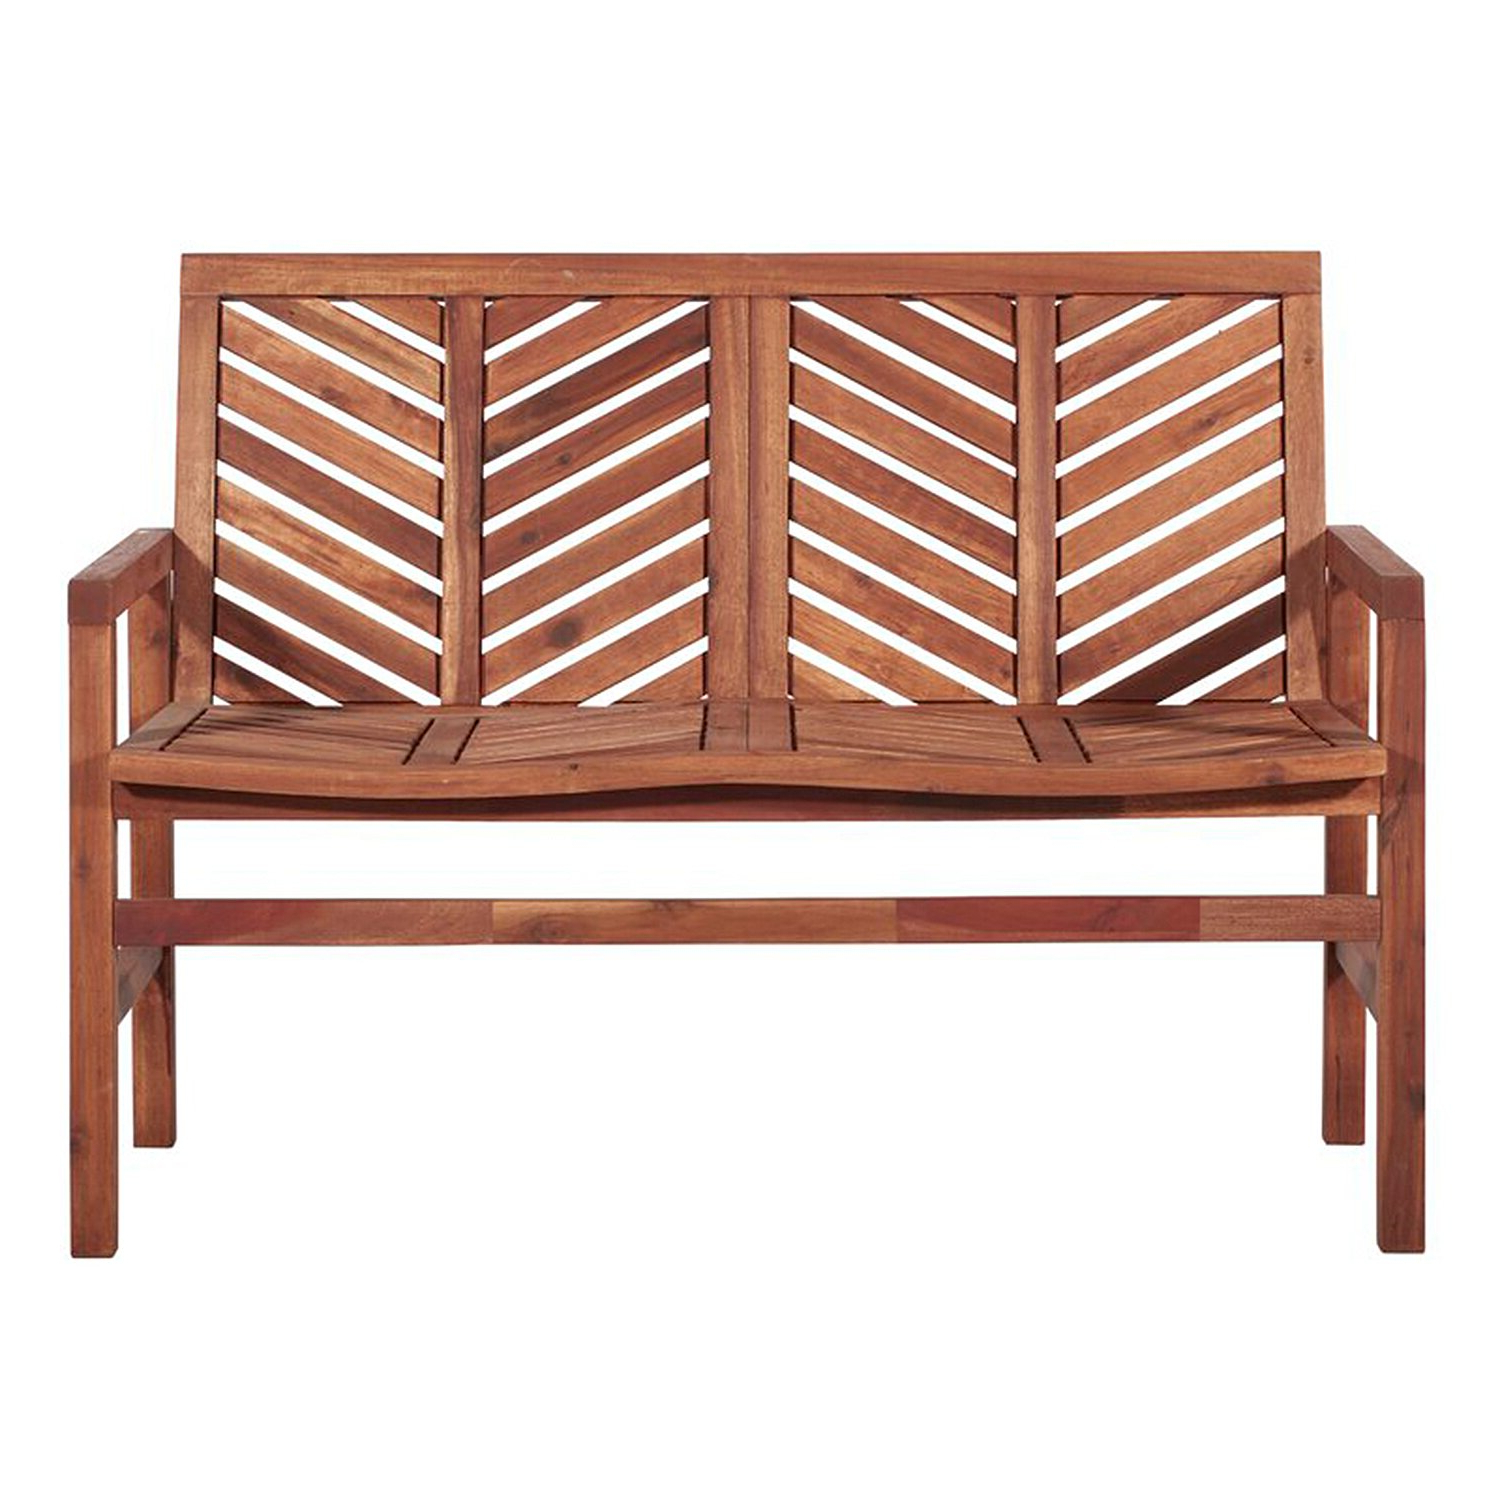 Skoog Chevron Wooden Garden Benches With Regard To Well Liked The 10 Best Deals From Wayfair's Outdoor Furniture Sale (View 5 of 30)